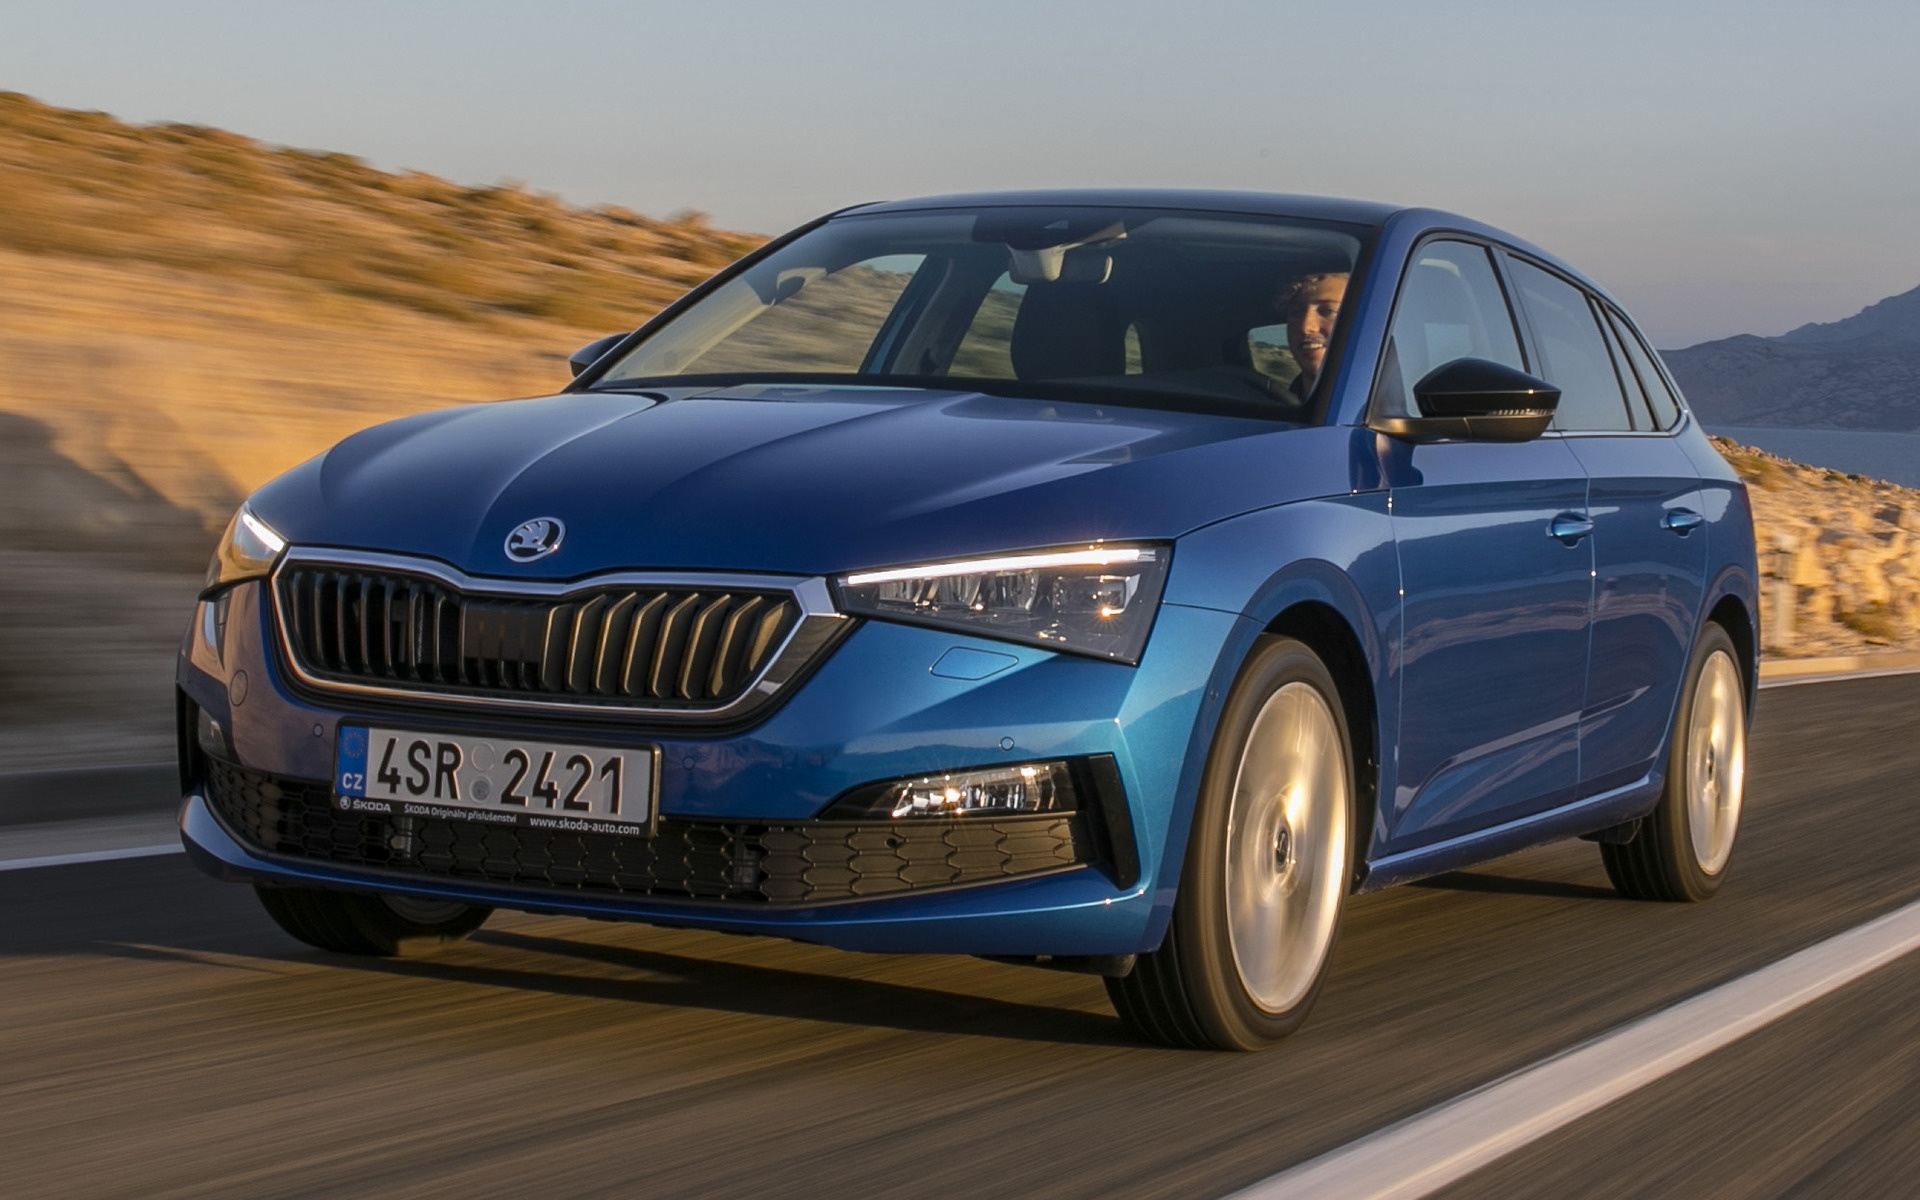 2019 Skoda Scala   Wallpapers and HD Images Car Pixel 1920x1200